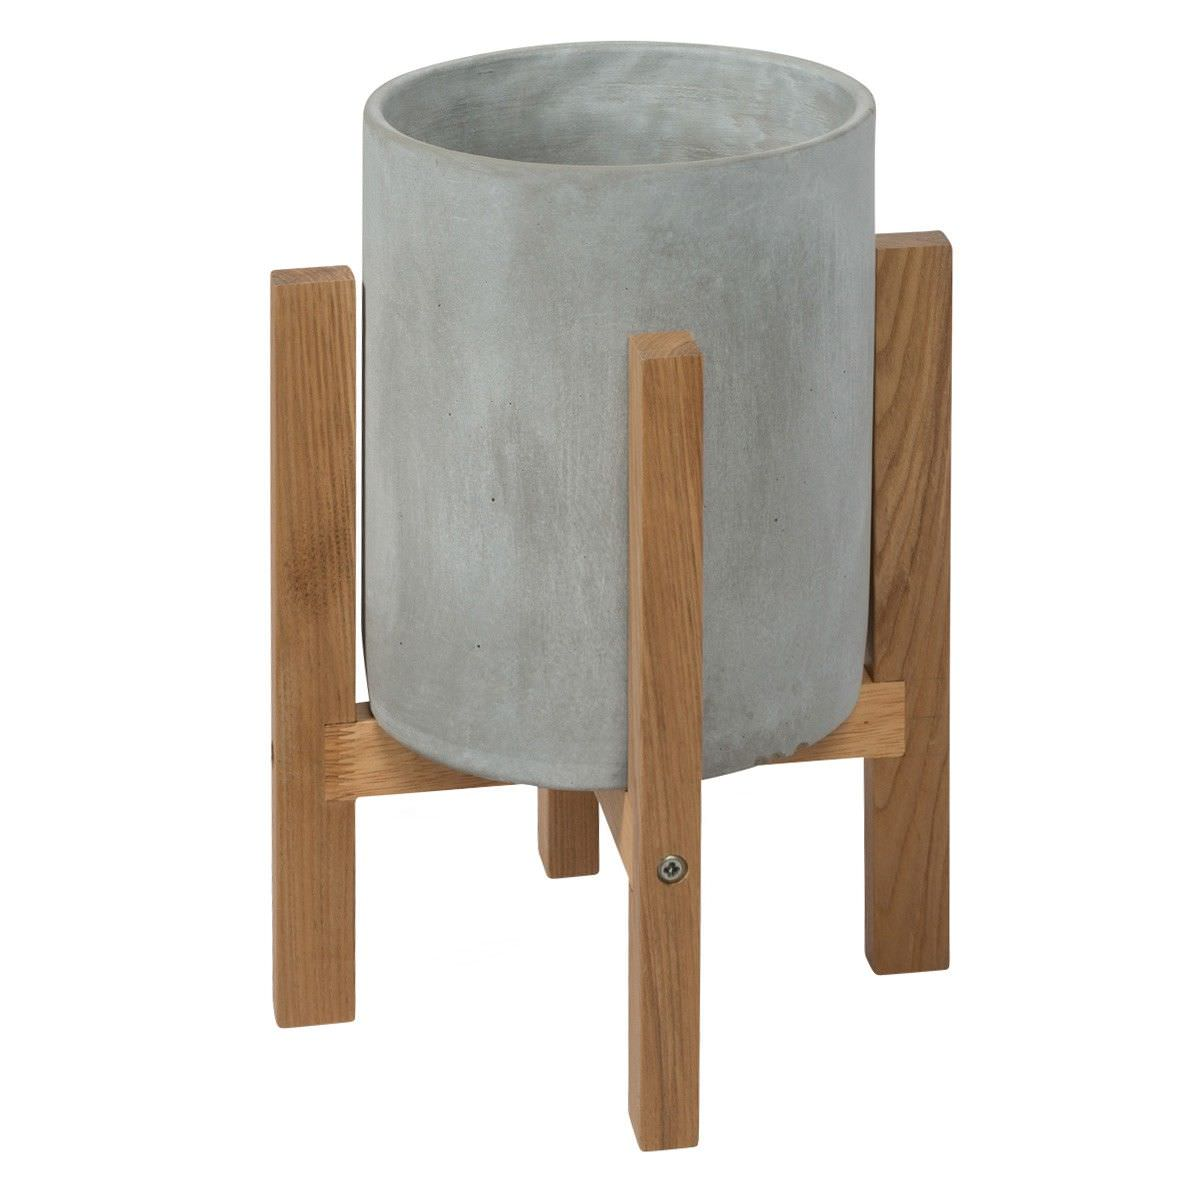 Royale Concrete Round Planter on Oak Stand, Small